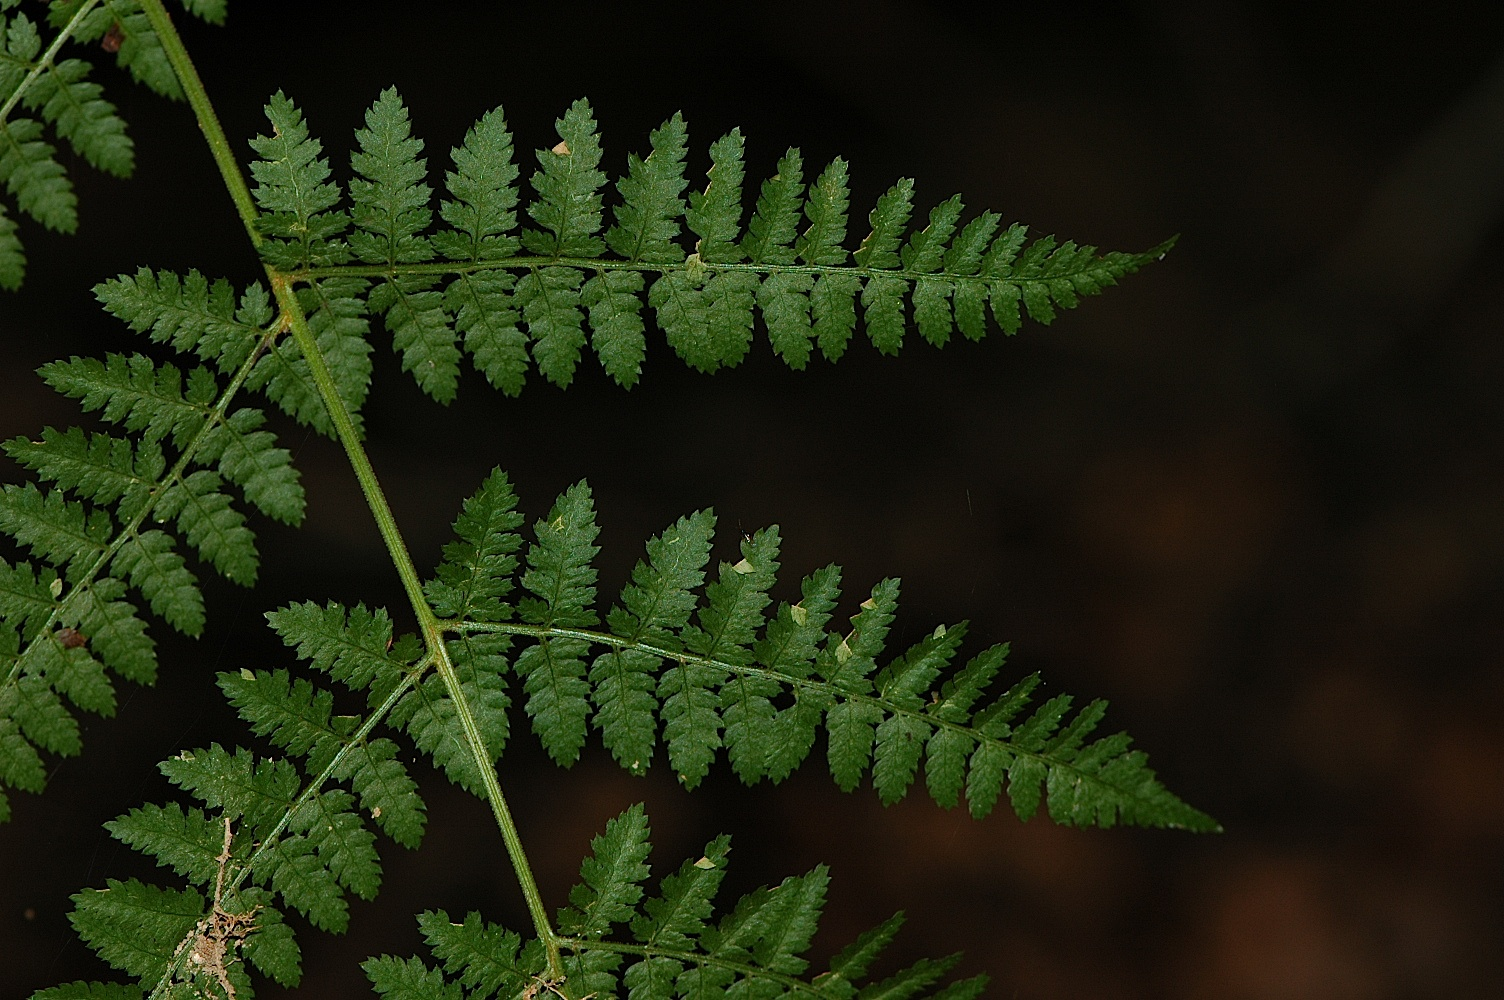 Non Flowering Plant Fern Ferns Are Non Flowering Plants